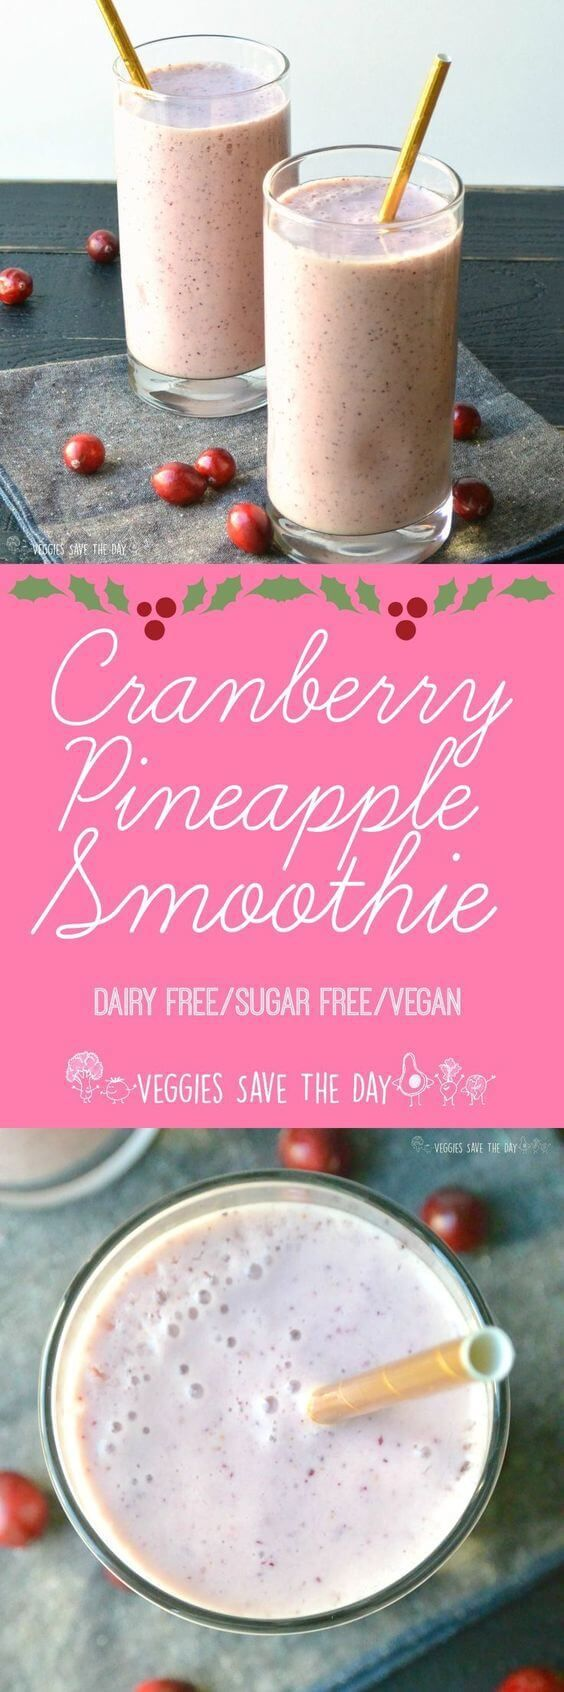 Cranberry Pineapple Smoothie